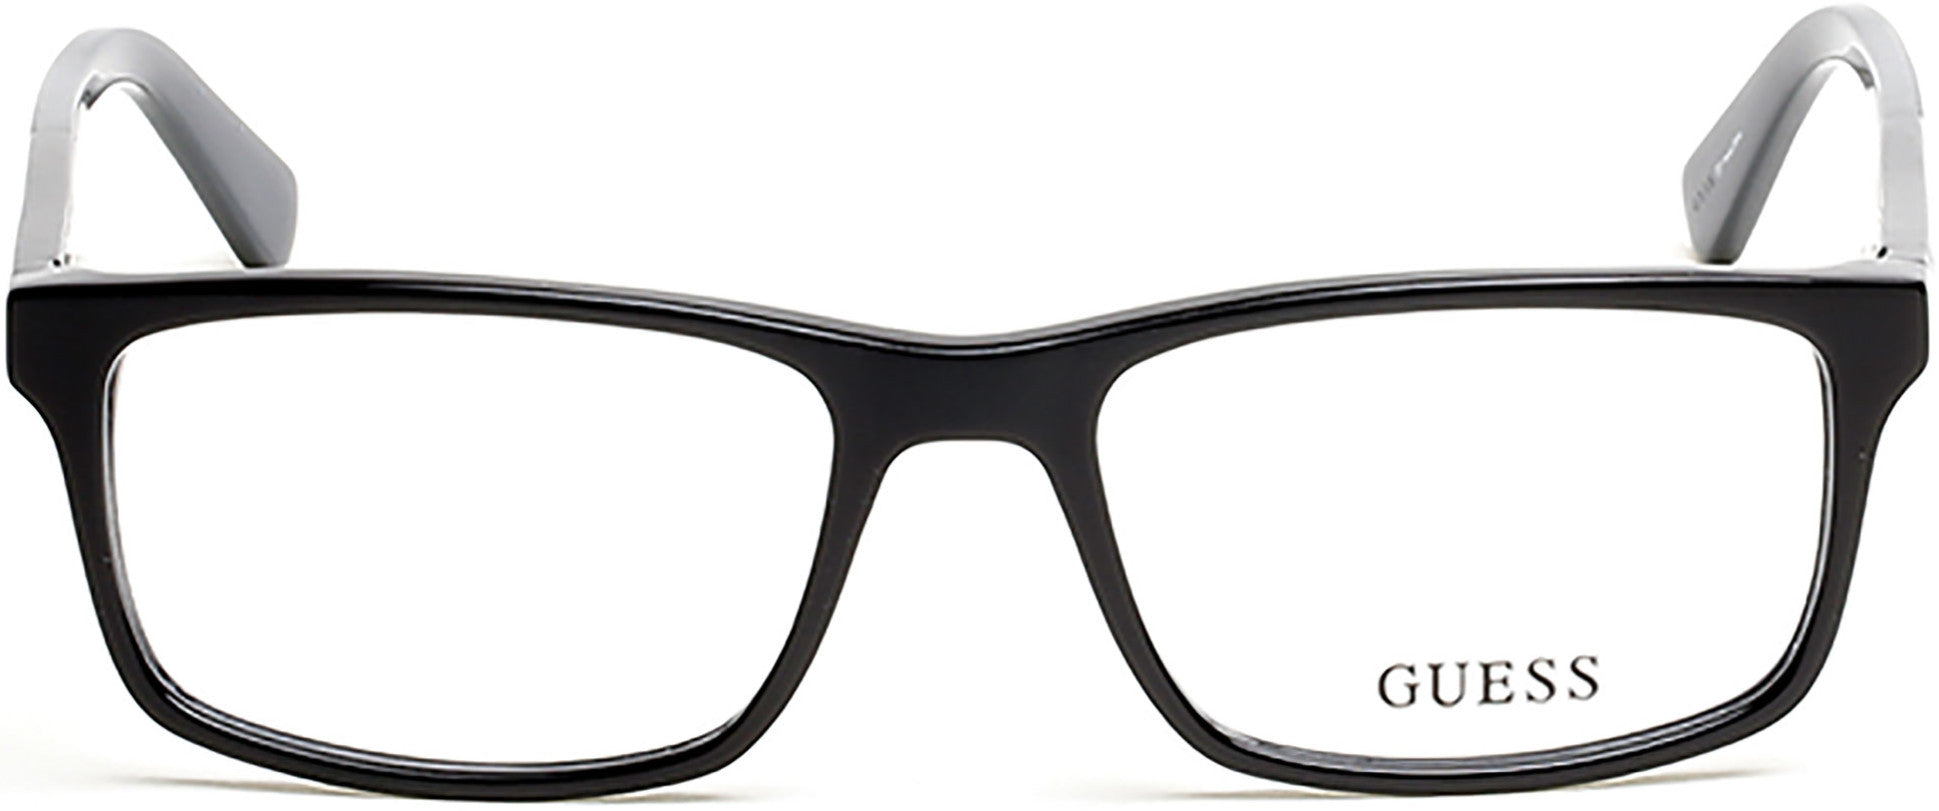 Guess GU1878 Rectangular Eyeglasses 001-001 - Shiny Black